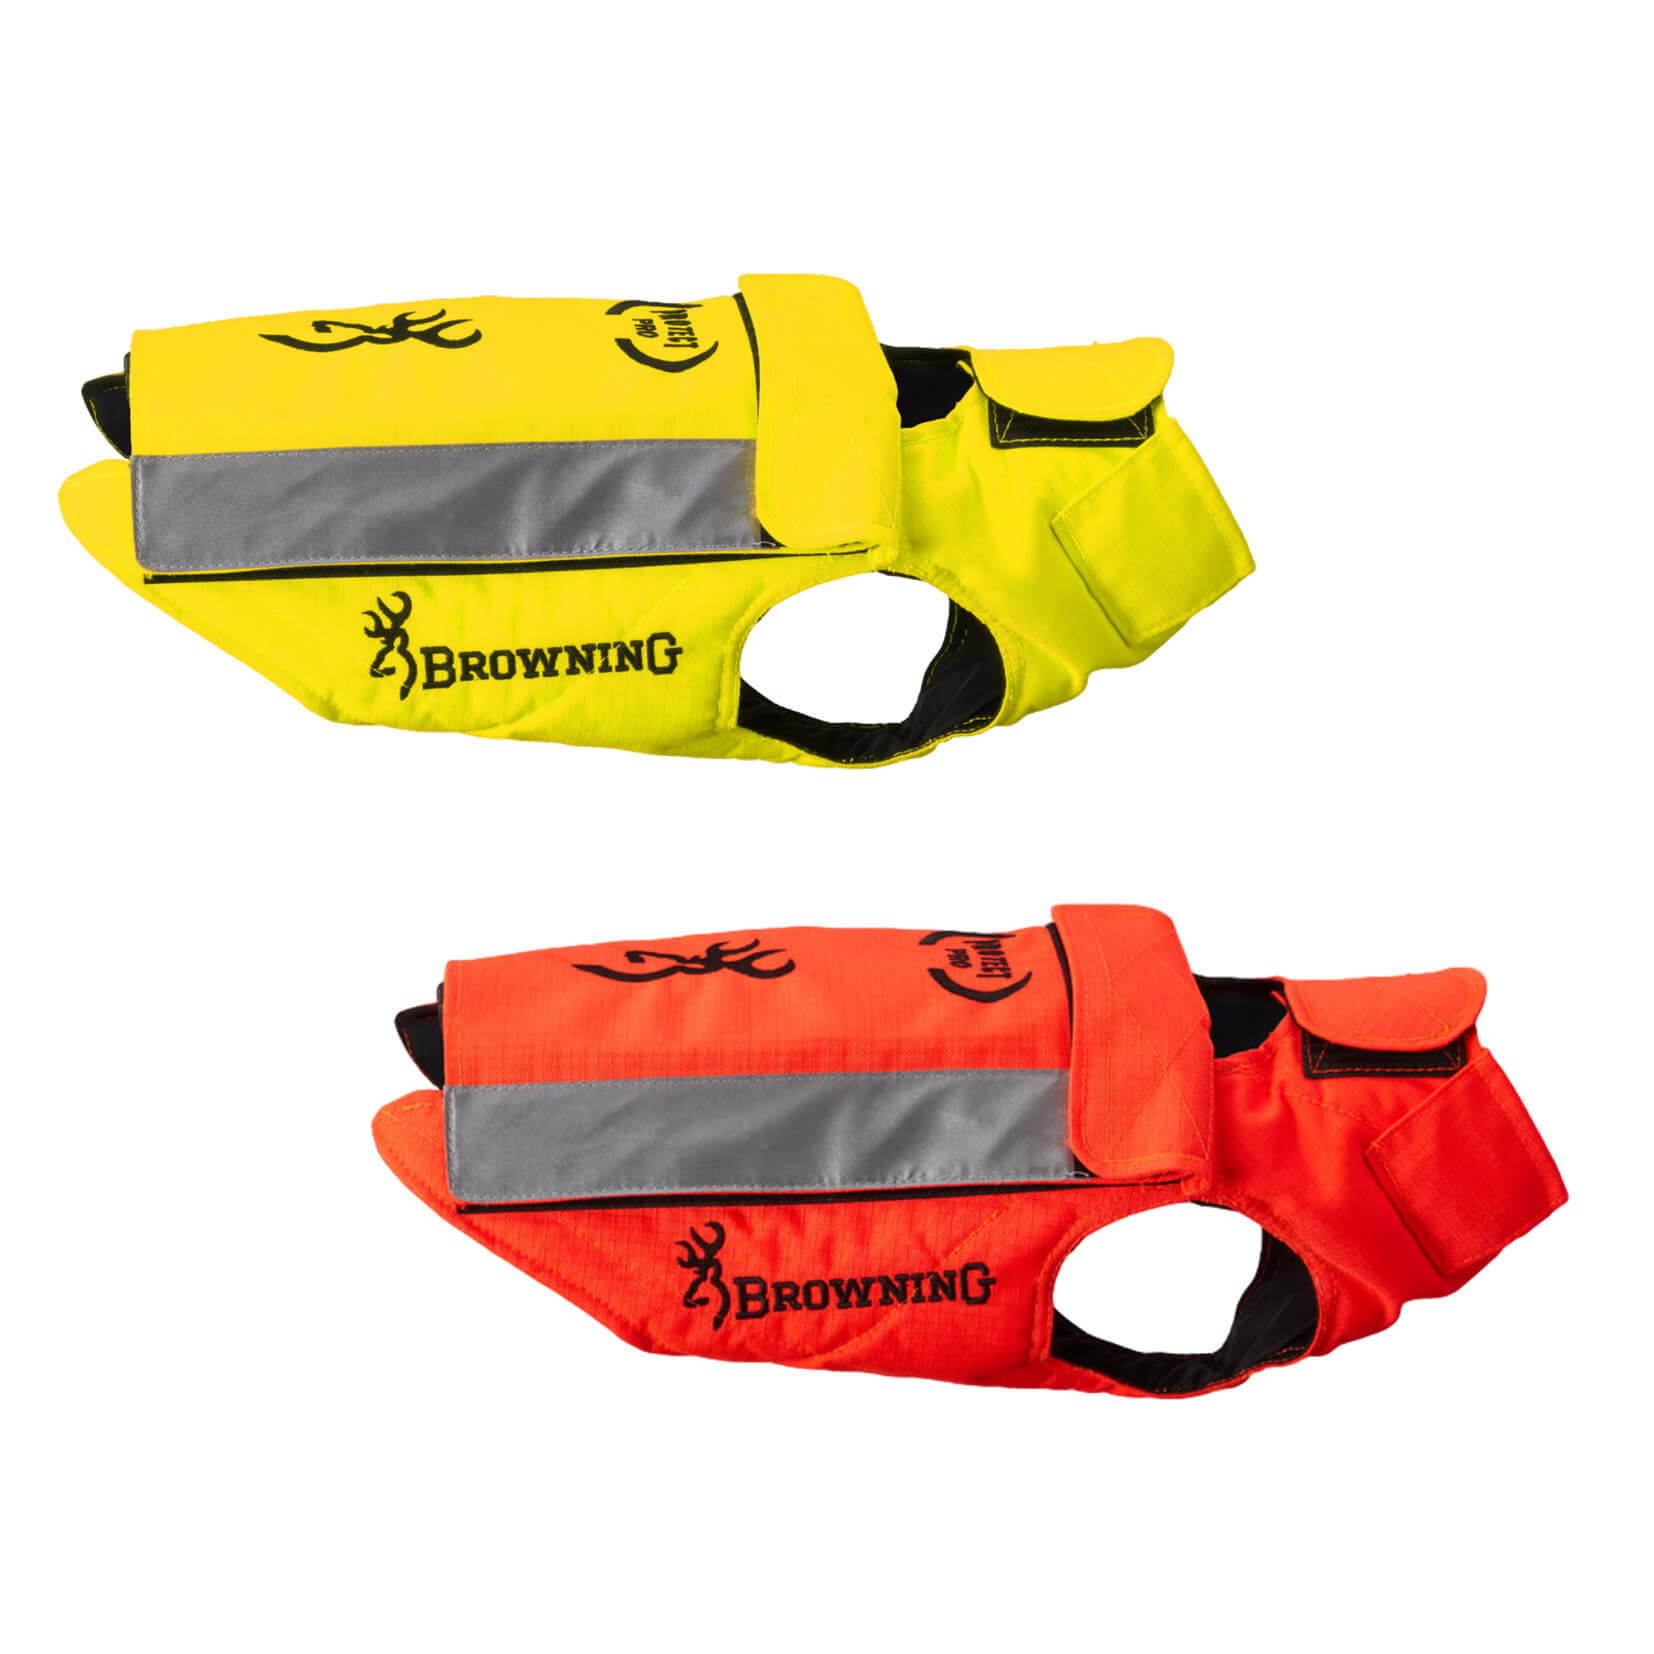 Browning Protect Pro Hundeschutzweste